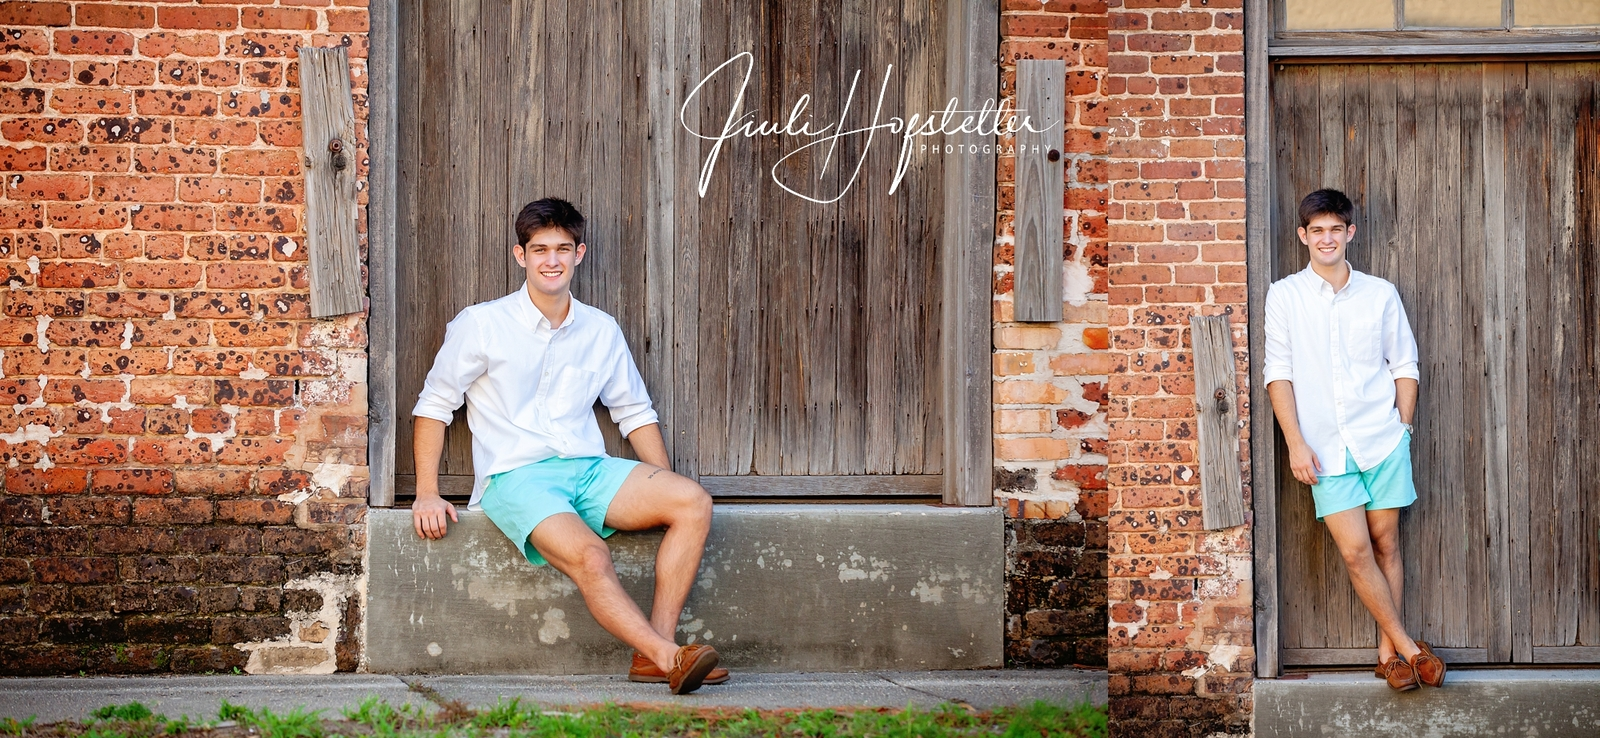 Pensacola Senior Photography Pensacola Senior Photographer Senior Pensacola Senior Graduation High School Graduate Pictures High School Graduate